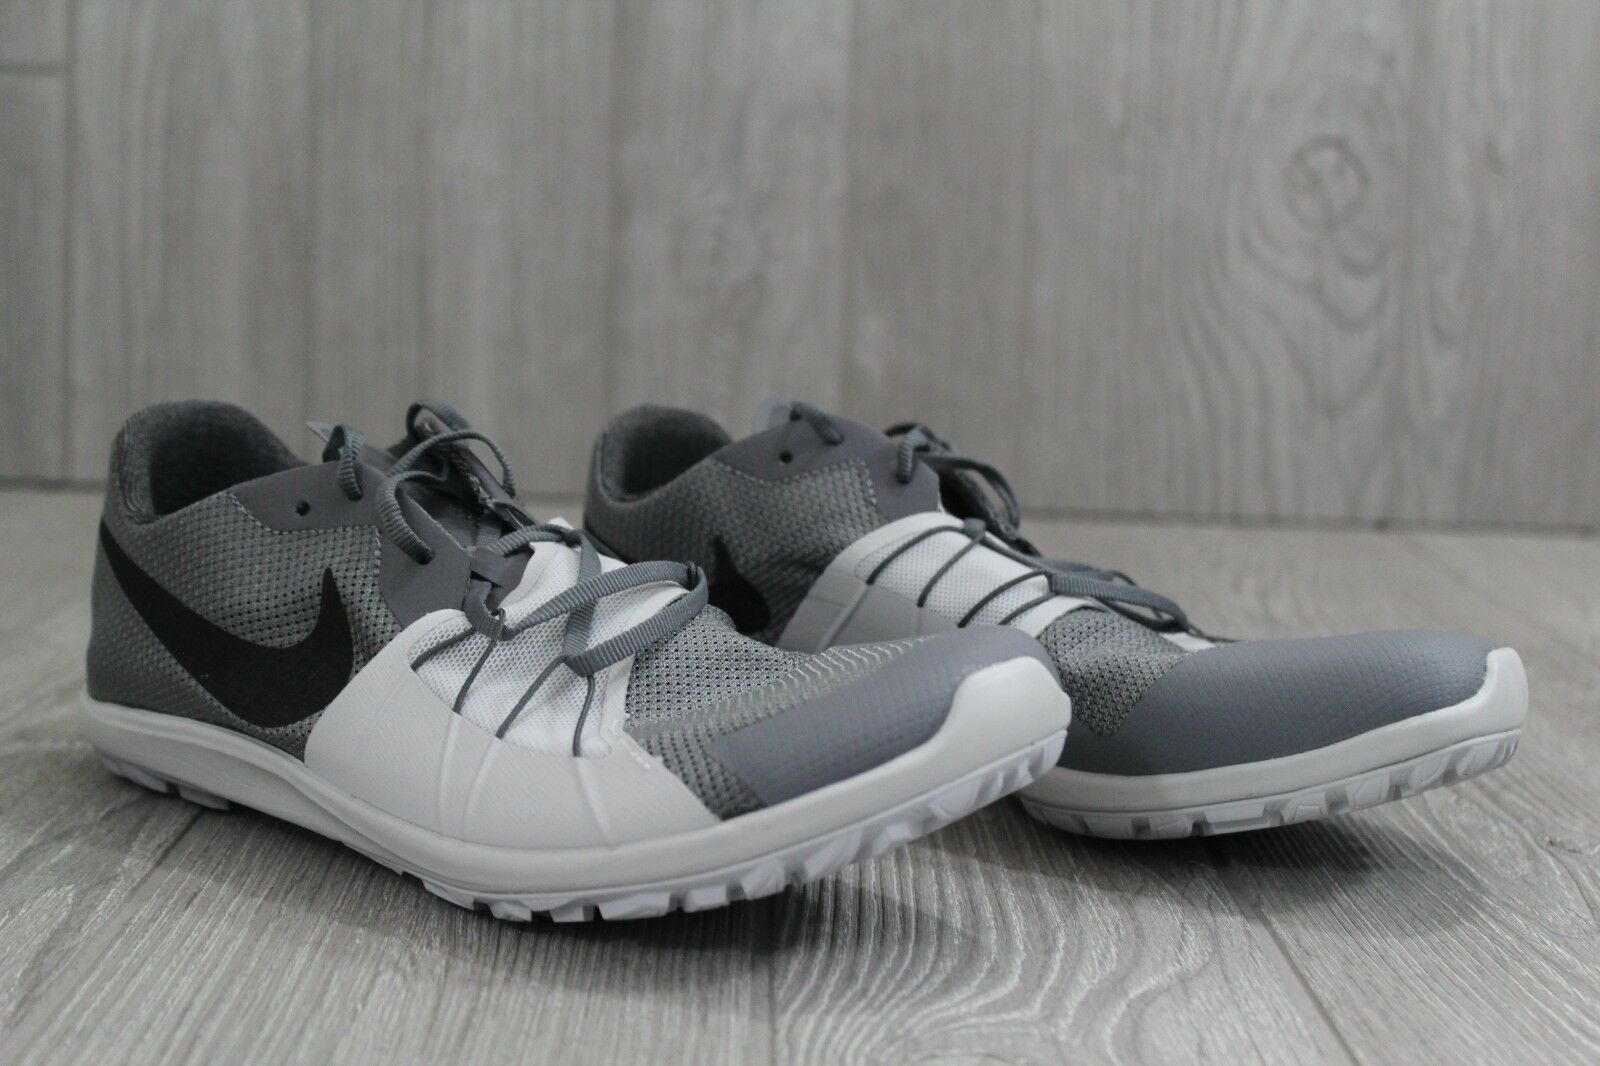 32 New Nike Zoom Forever Waffle 5 Grey Spikeless Spikeless Spikeless XC shoes 904722-002 Men's US 8 2c707a